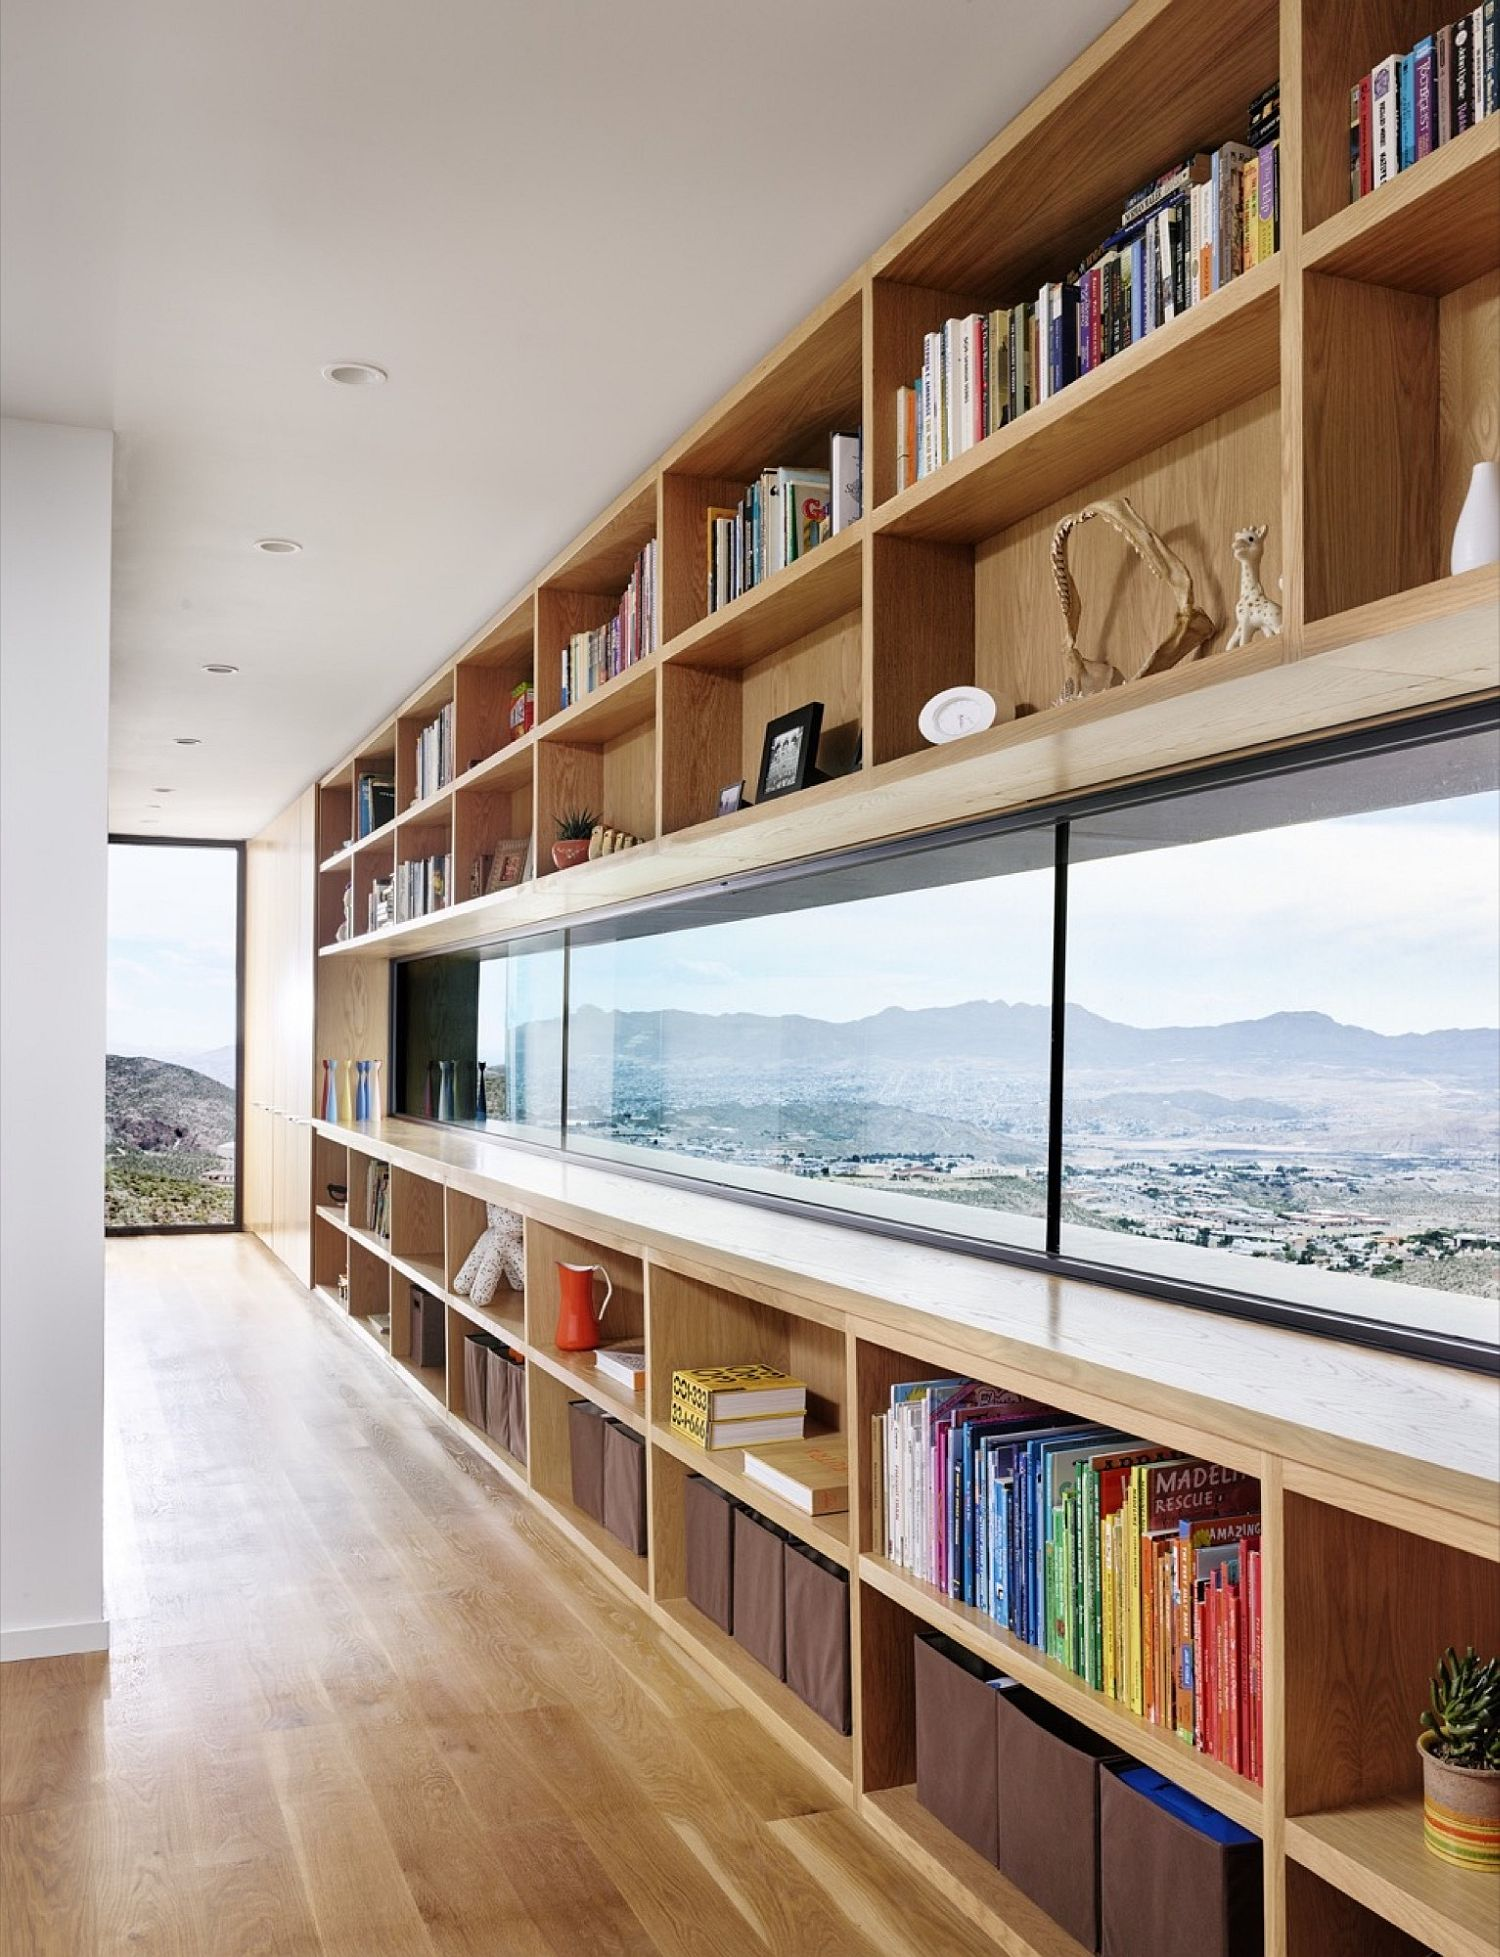 Wall of open shelves and long windows combines storage with captivating views